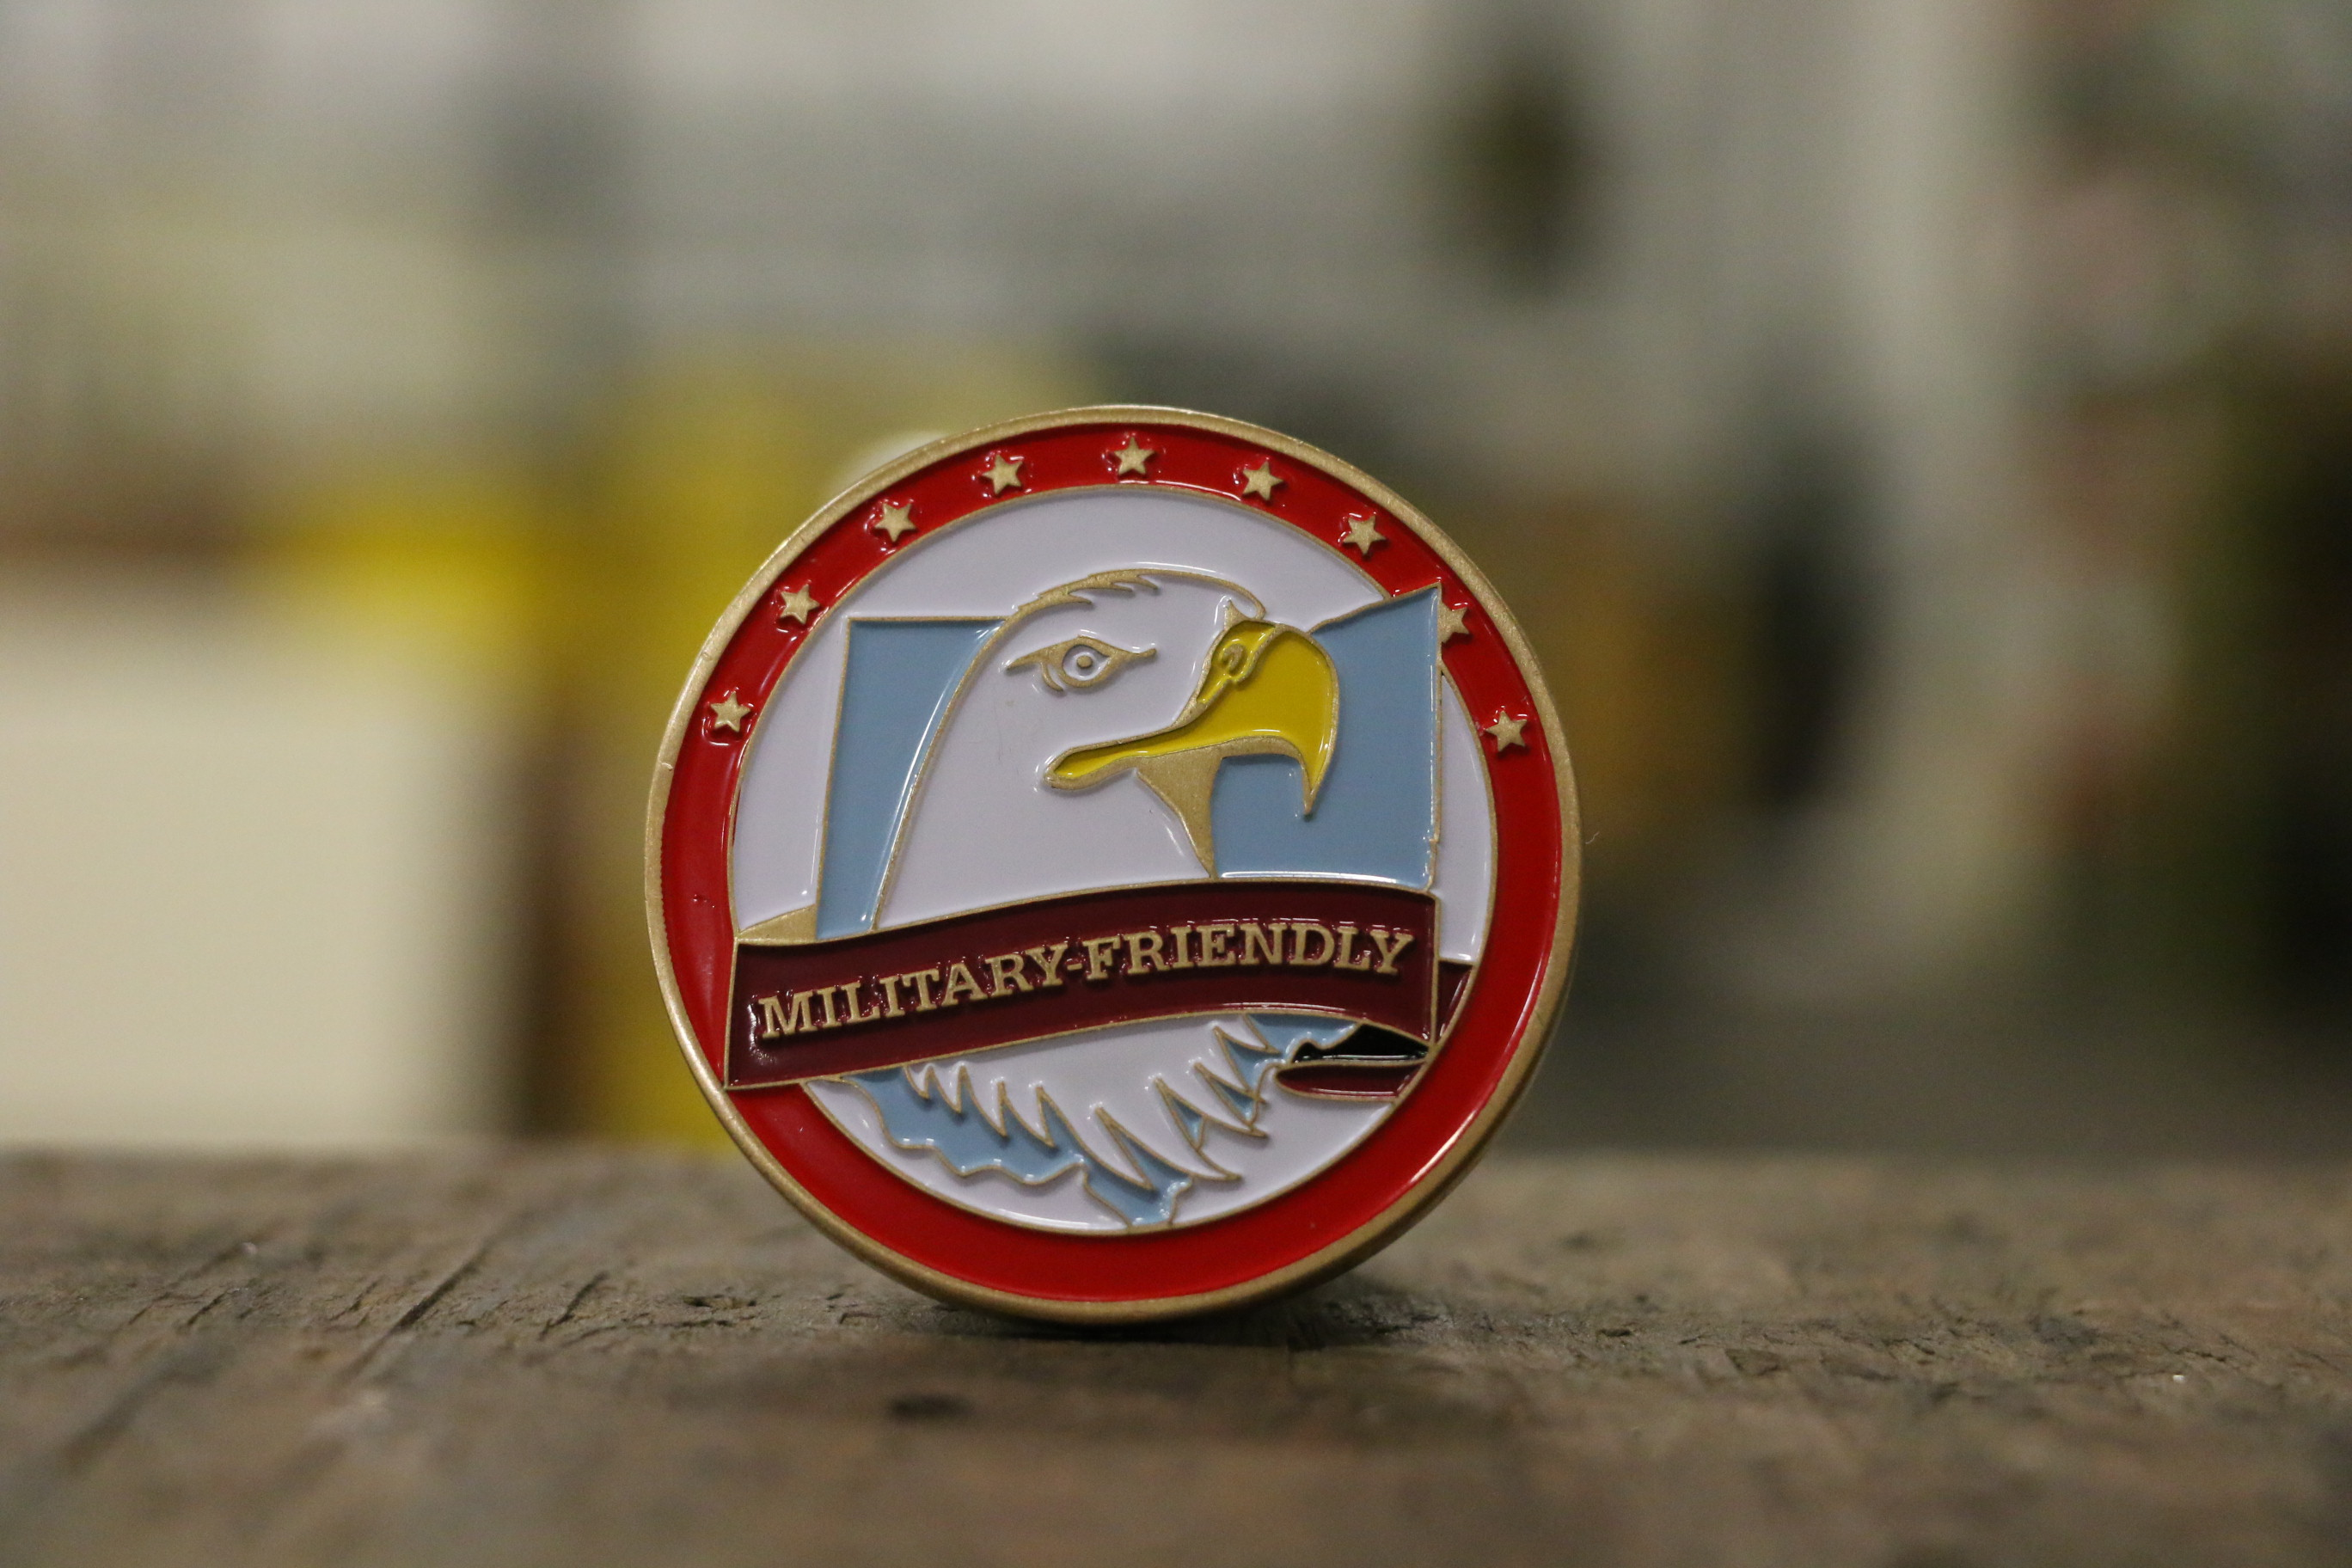 Military Friendly Coin.jpg